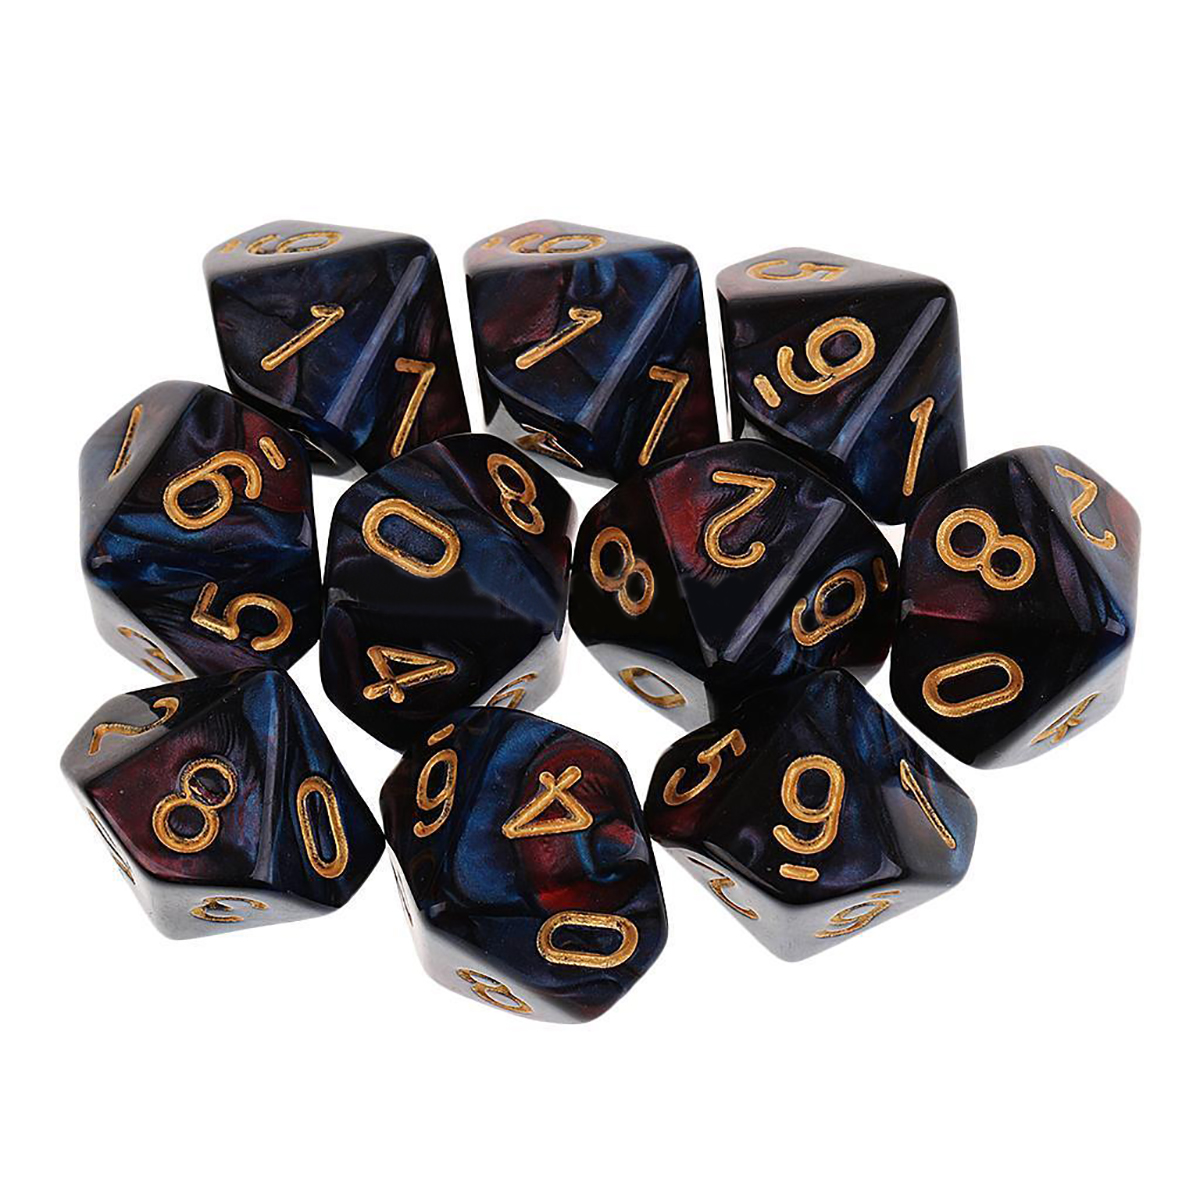 NEW Acrylic 10PCS D10 Sided Dices Set Polyhedral Die For Dungeons And Dragons Table Games Playing Game